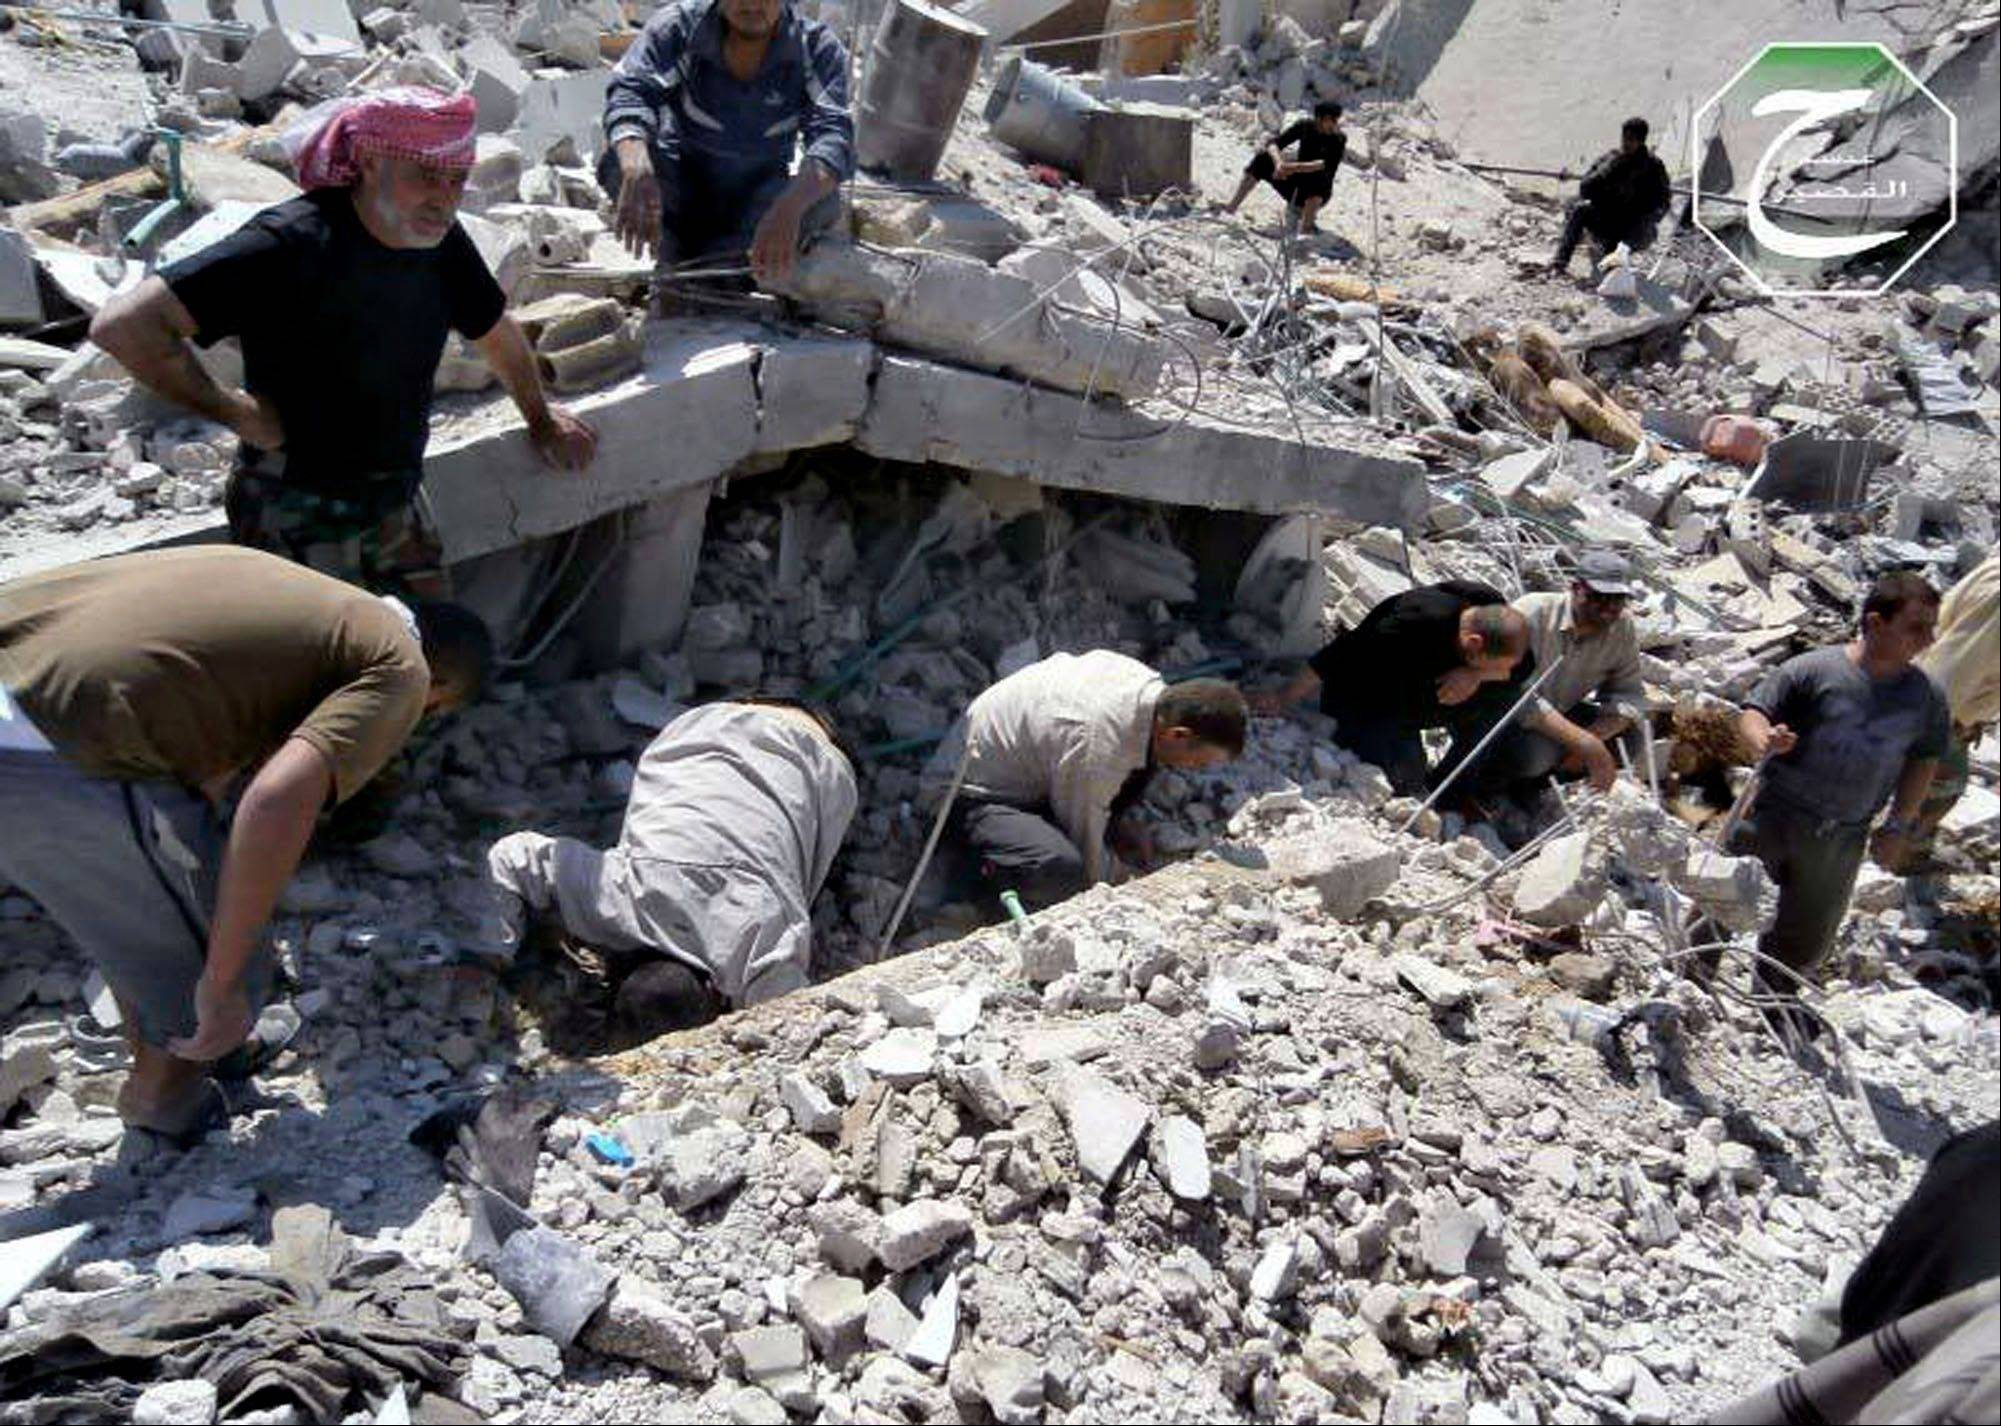 Syrian citizens inspect the rubble of buildings that were damaged from a Syrian forces airstrike in the town of Qusair, near the Lebanon border, Homs province, Syria. Cut off for three weeks by a regime siege, doctors in the Syrian town of Qusair keep hundreds of wounded in storerooms and underground shop cellars, short on antibiotics and anesthesia, using unsterilized cloth for bandages and blowing air with pumps because there�s no oxygen canisters, amid relentless shelling and sniper fire. More than a dozen have died from untreated wounds and at least 300 others need immediate evacuation, one doctor says.